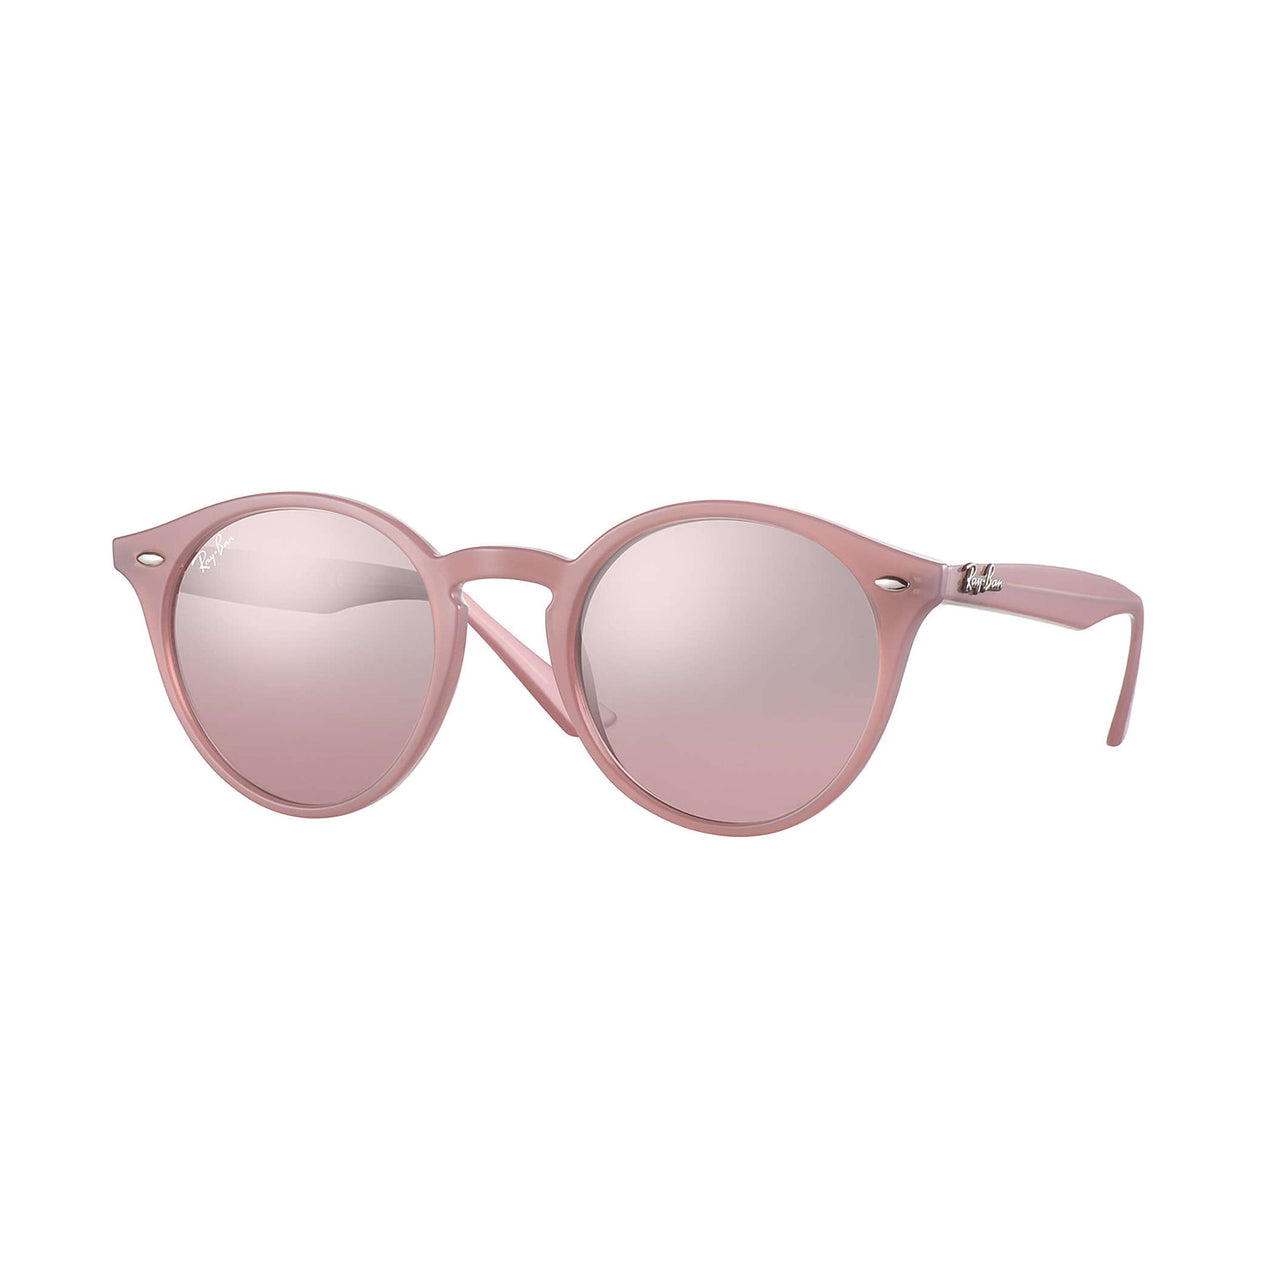 f9d61ef234 Ray Ban Rb2180 - Pink Frame - Silver pink Gradient Mirror Lens ...